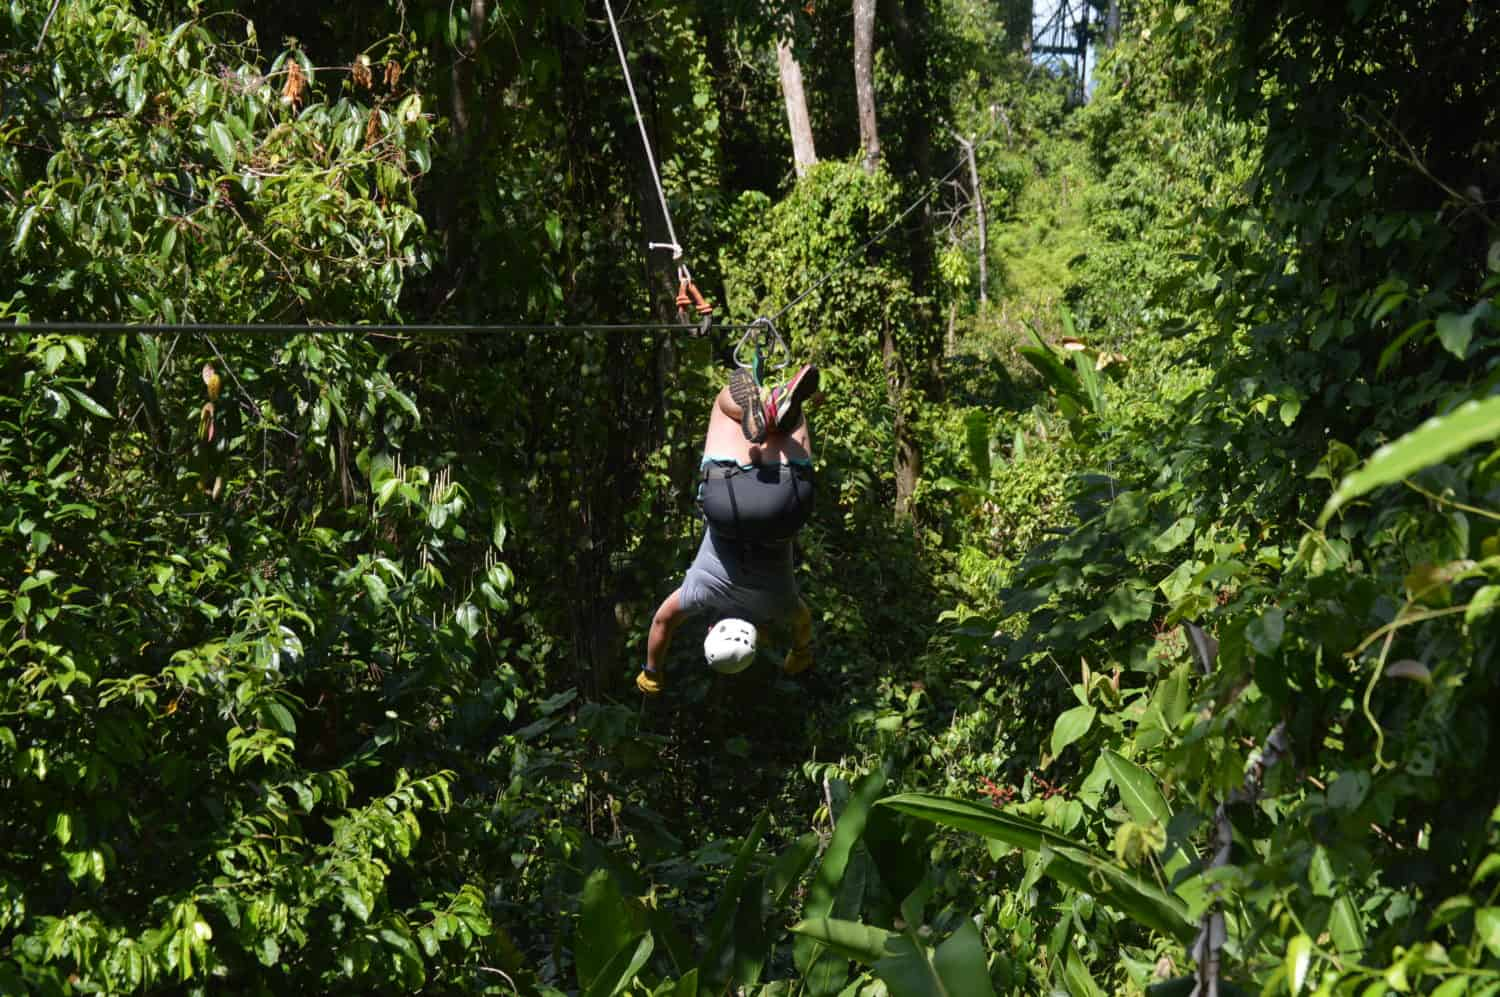 Optional ziplining upside down...not pretty or comfortable, but fun to try once!